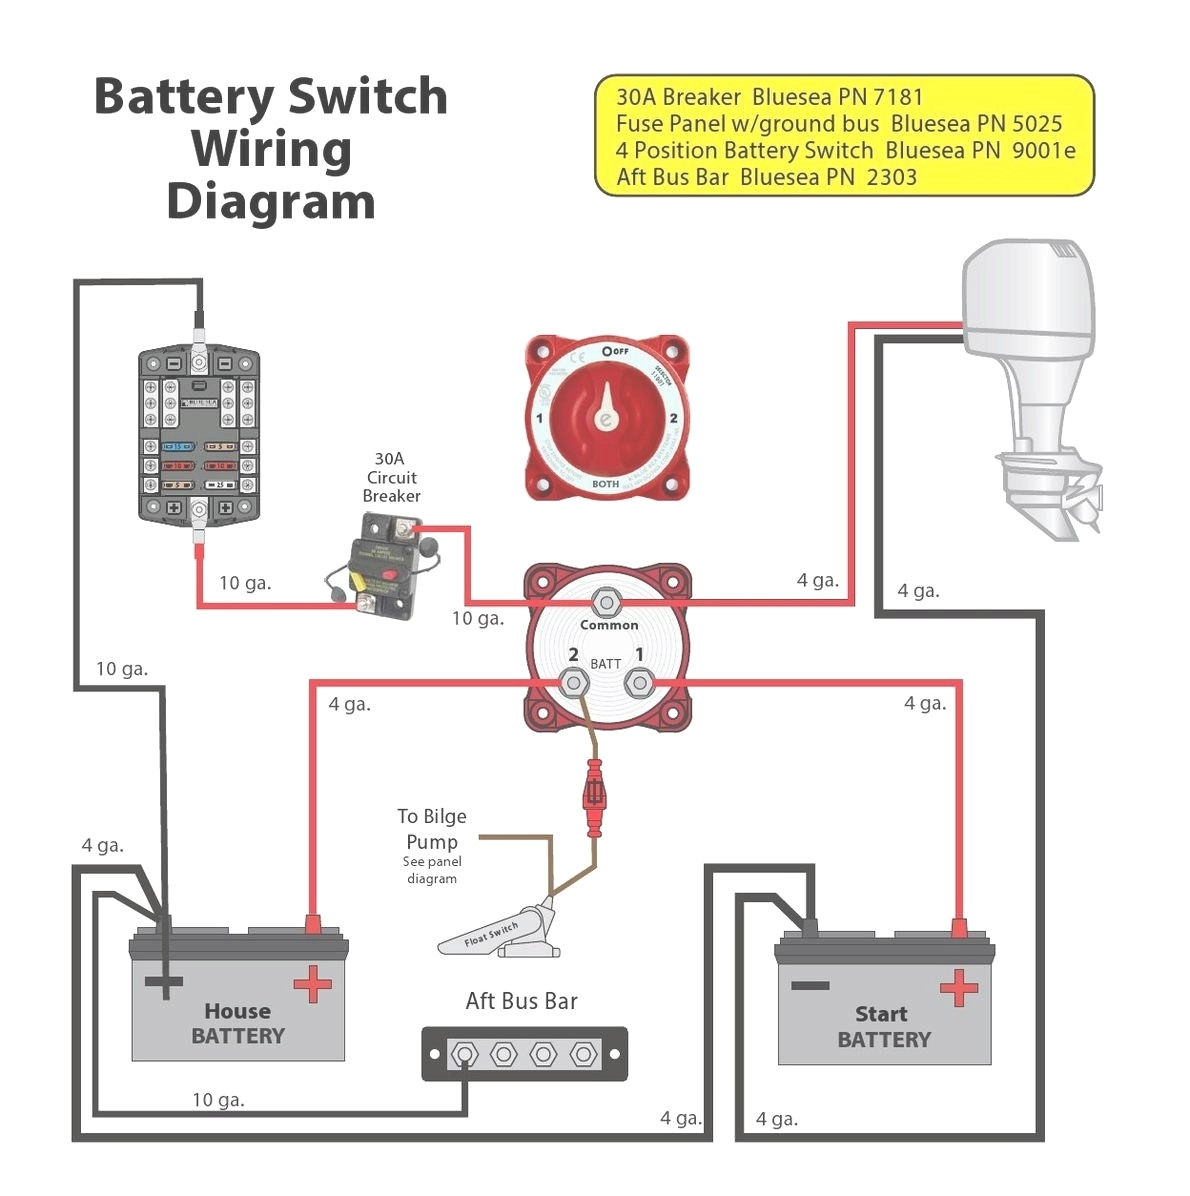 Perko Battery Switch Wiring Diagram - Dual Battery Switch Wiring Diagram Daigram In Perko 19m